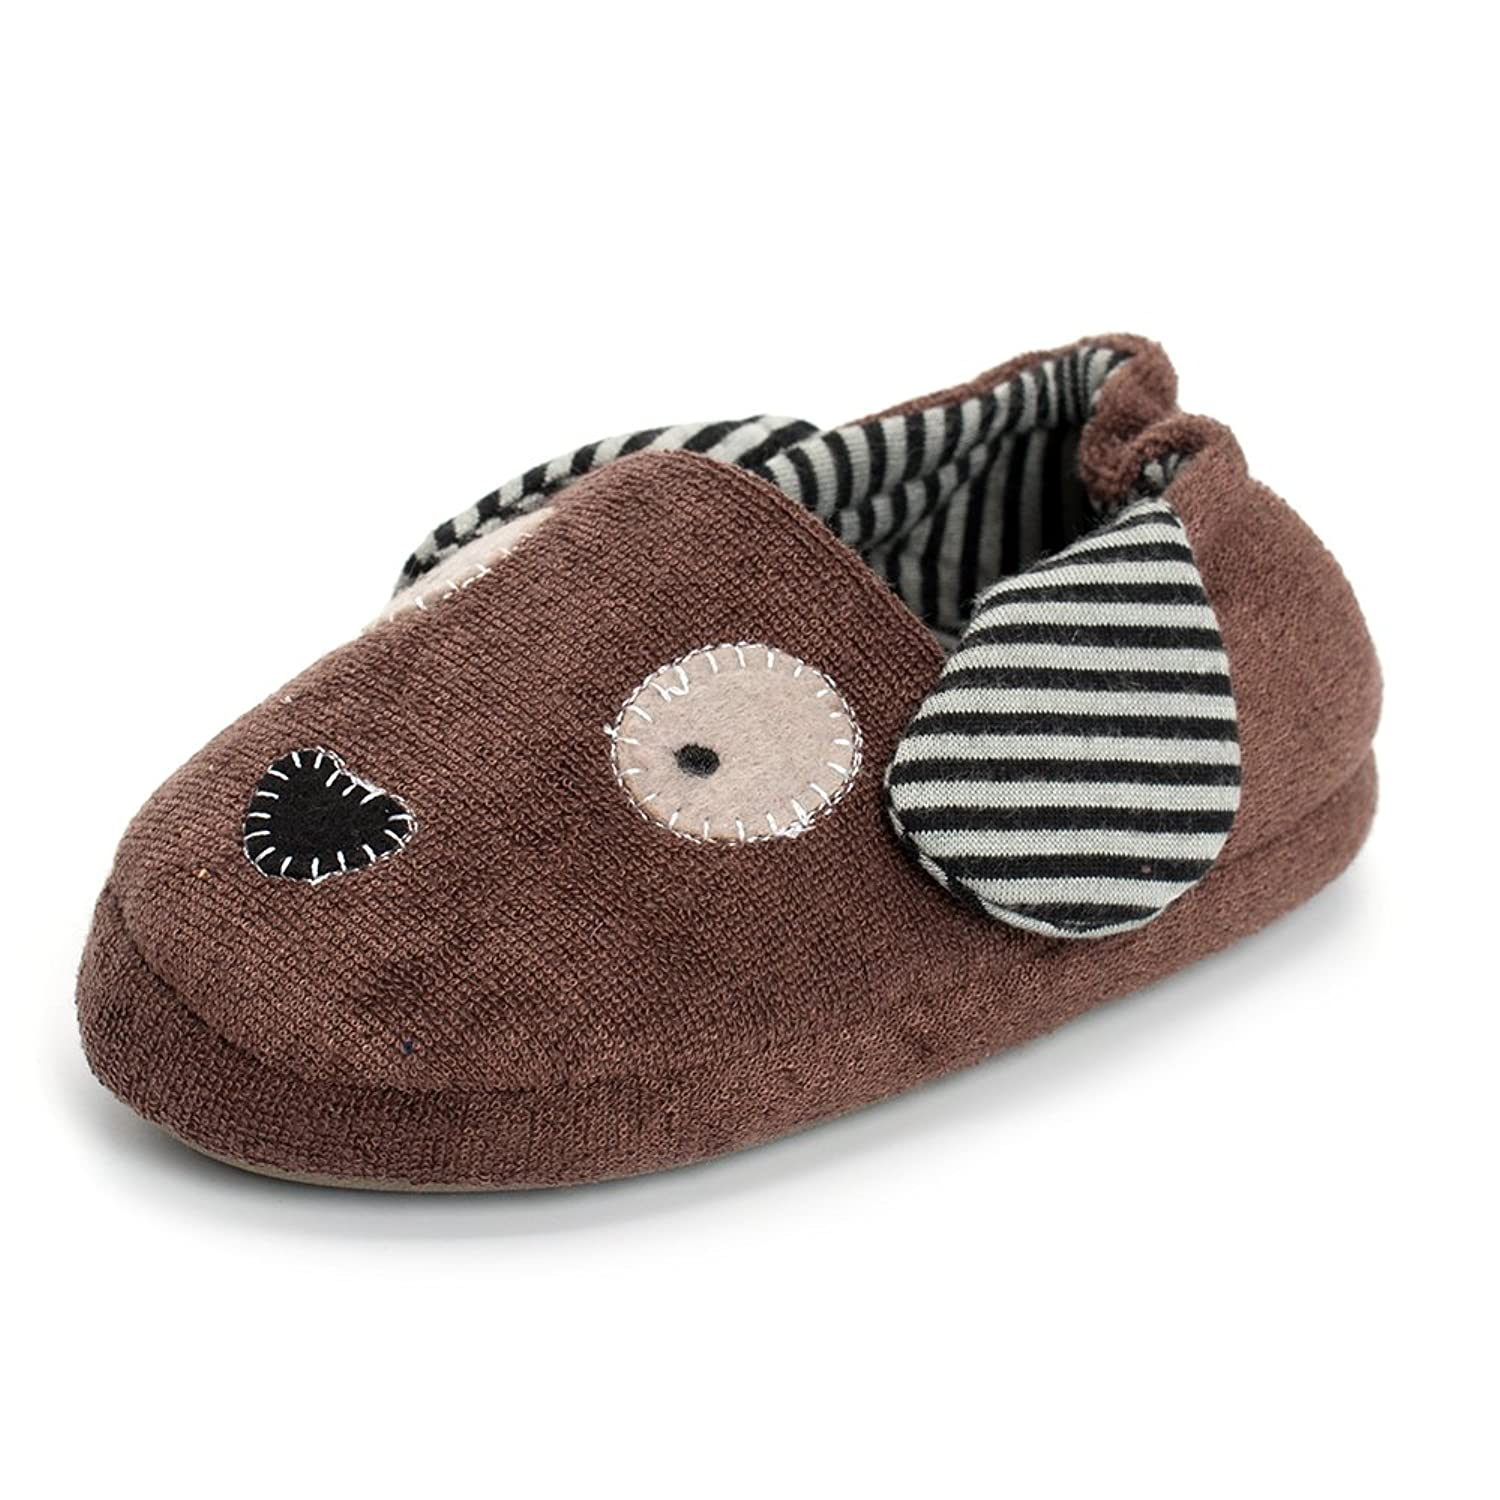 Boys Slippers | Amazon.com